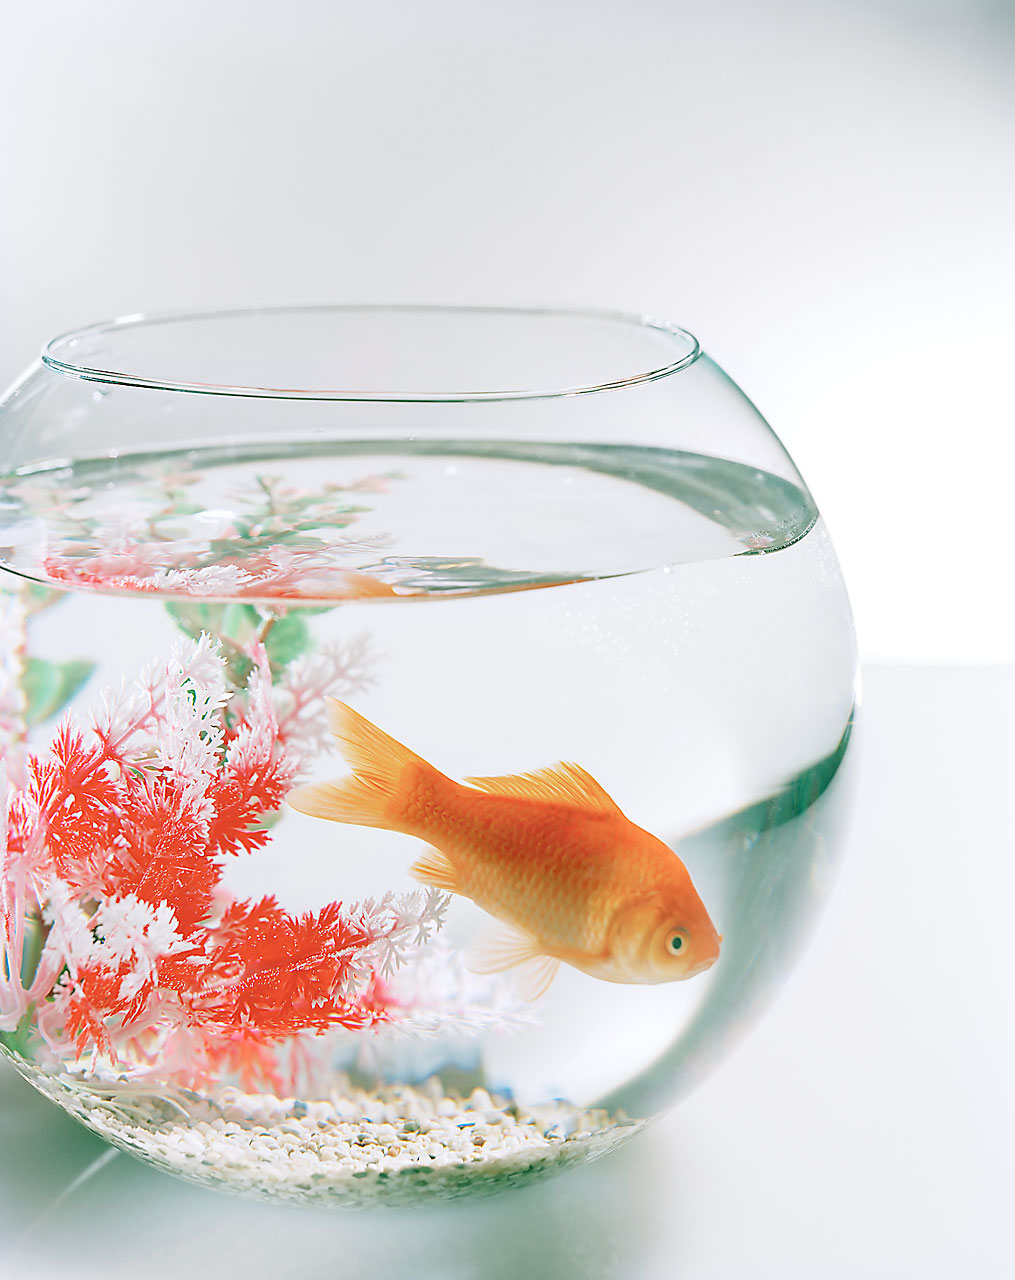 Sabine-Scheer-fotodesign-goldfischglas-fish-bowl